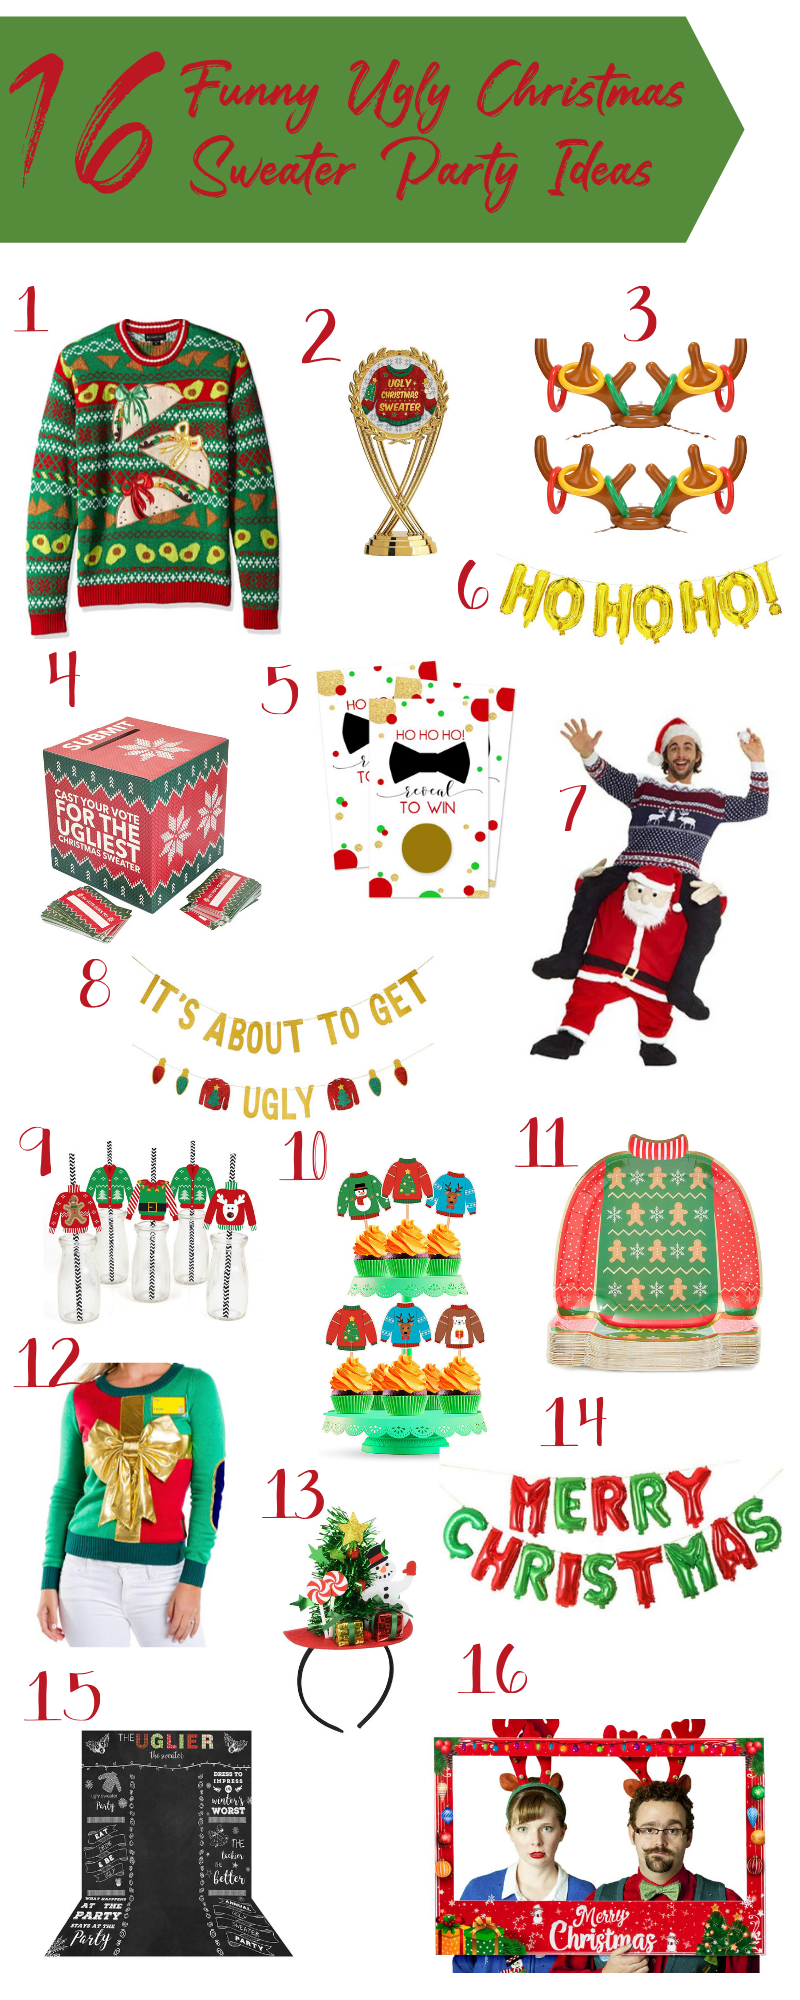 Funny Ugly Christmas Sweater Kids & Funny Ugly Christmas Sweater #uglychristmassweatersdiy